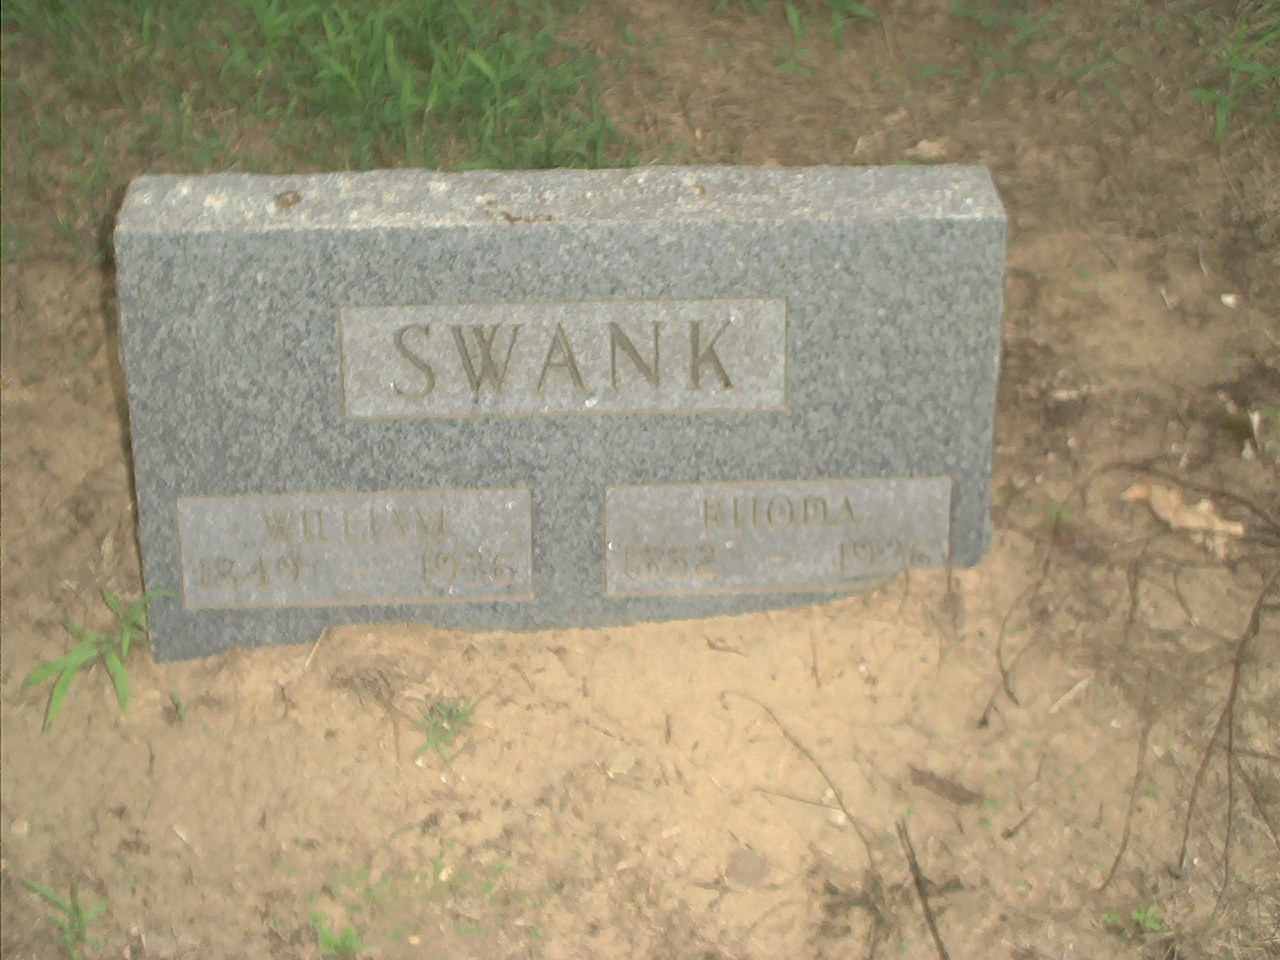 William Clay Swank